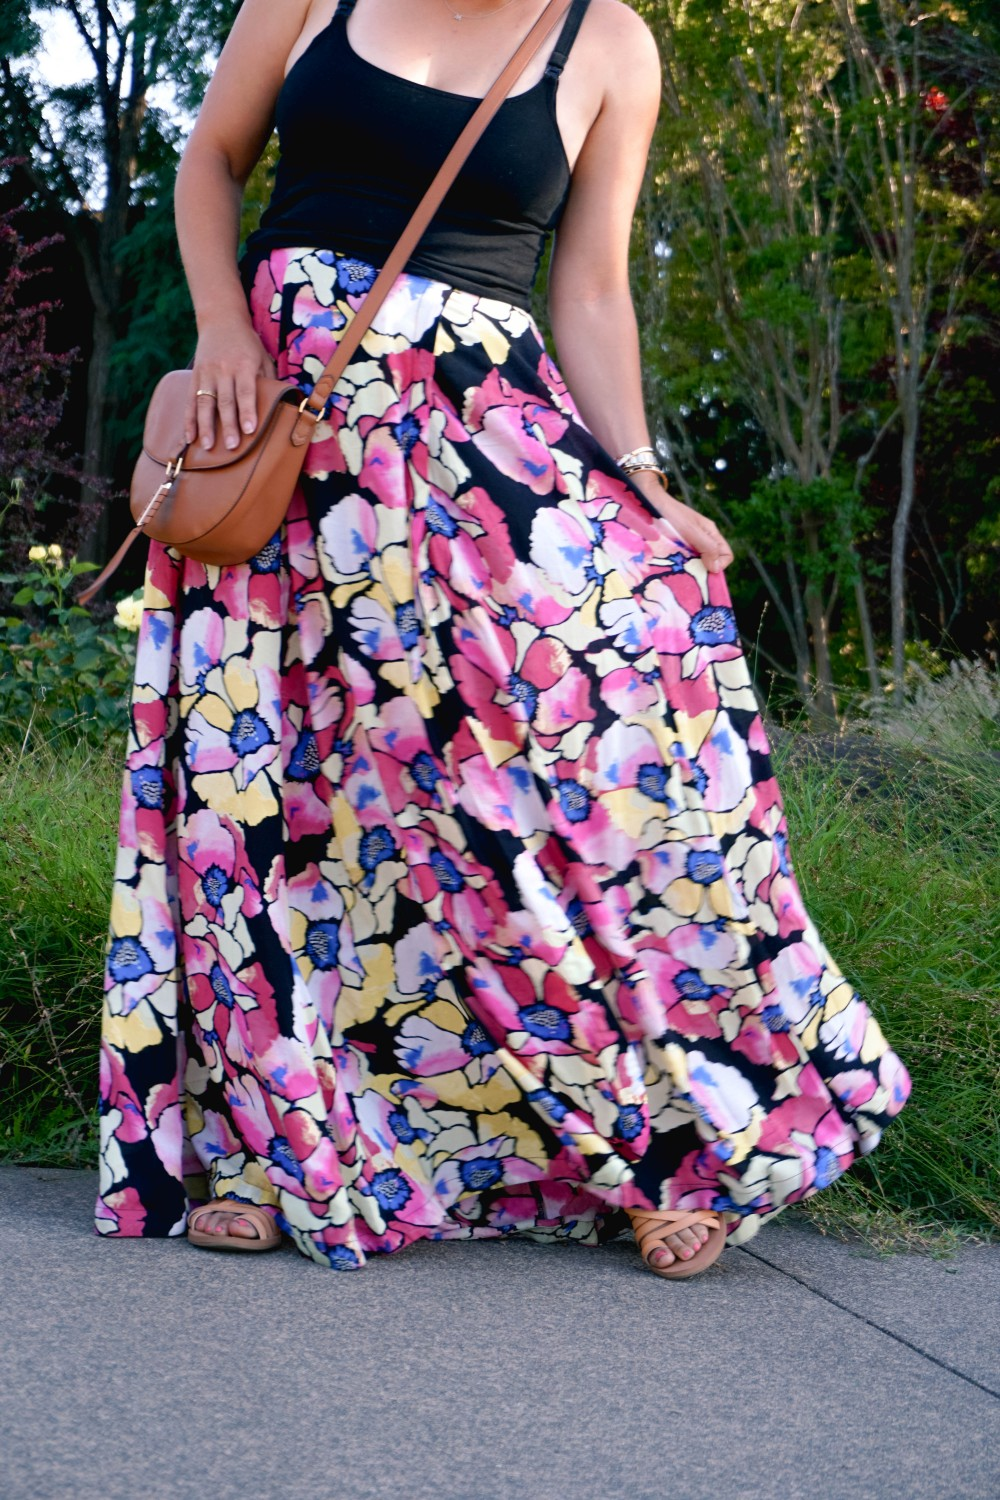 Hot Tropics Floral Maxi Skirt-Free People Floral Maxi Skirt-Outfit Inspiration-Wine Country-Mom Style-Nursing Top-Have Need Want 8